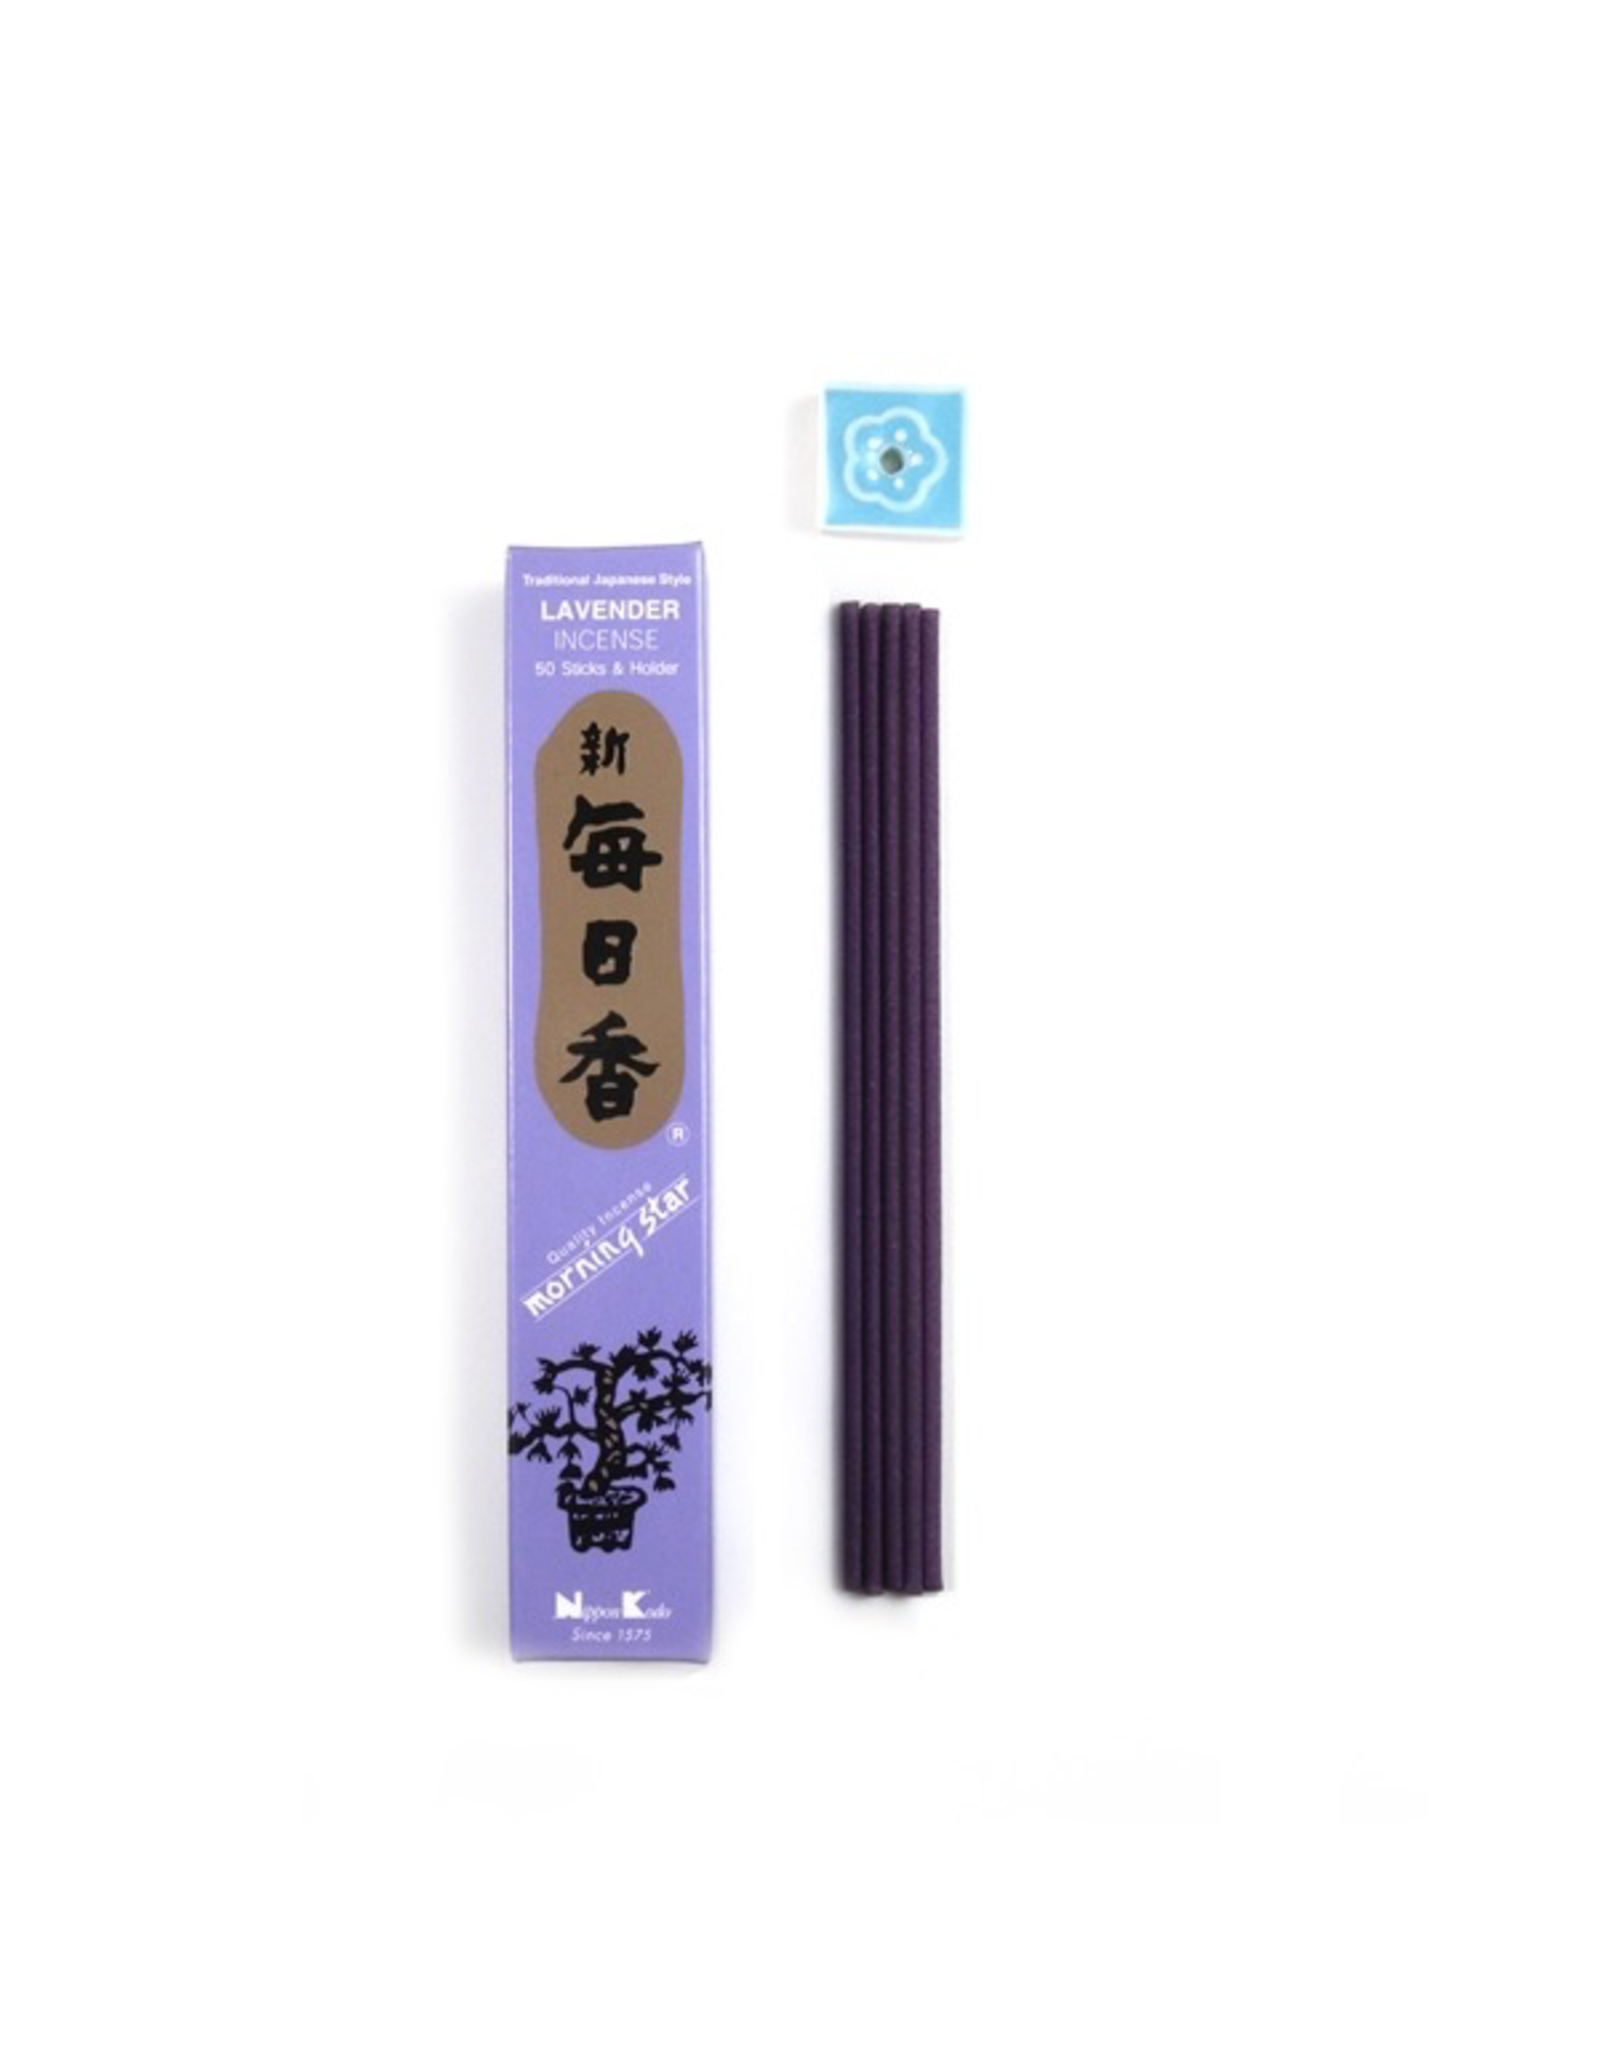 Nippon Kodo Morningstar Japanese Rolled Lavender Incense